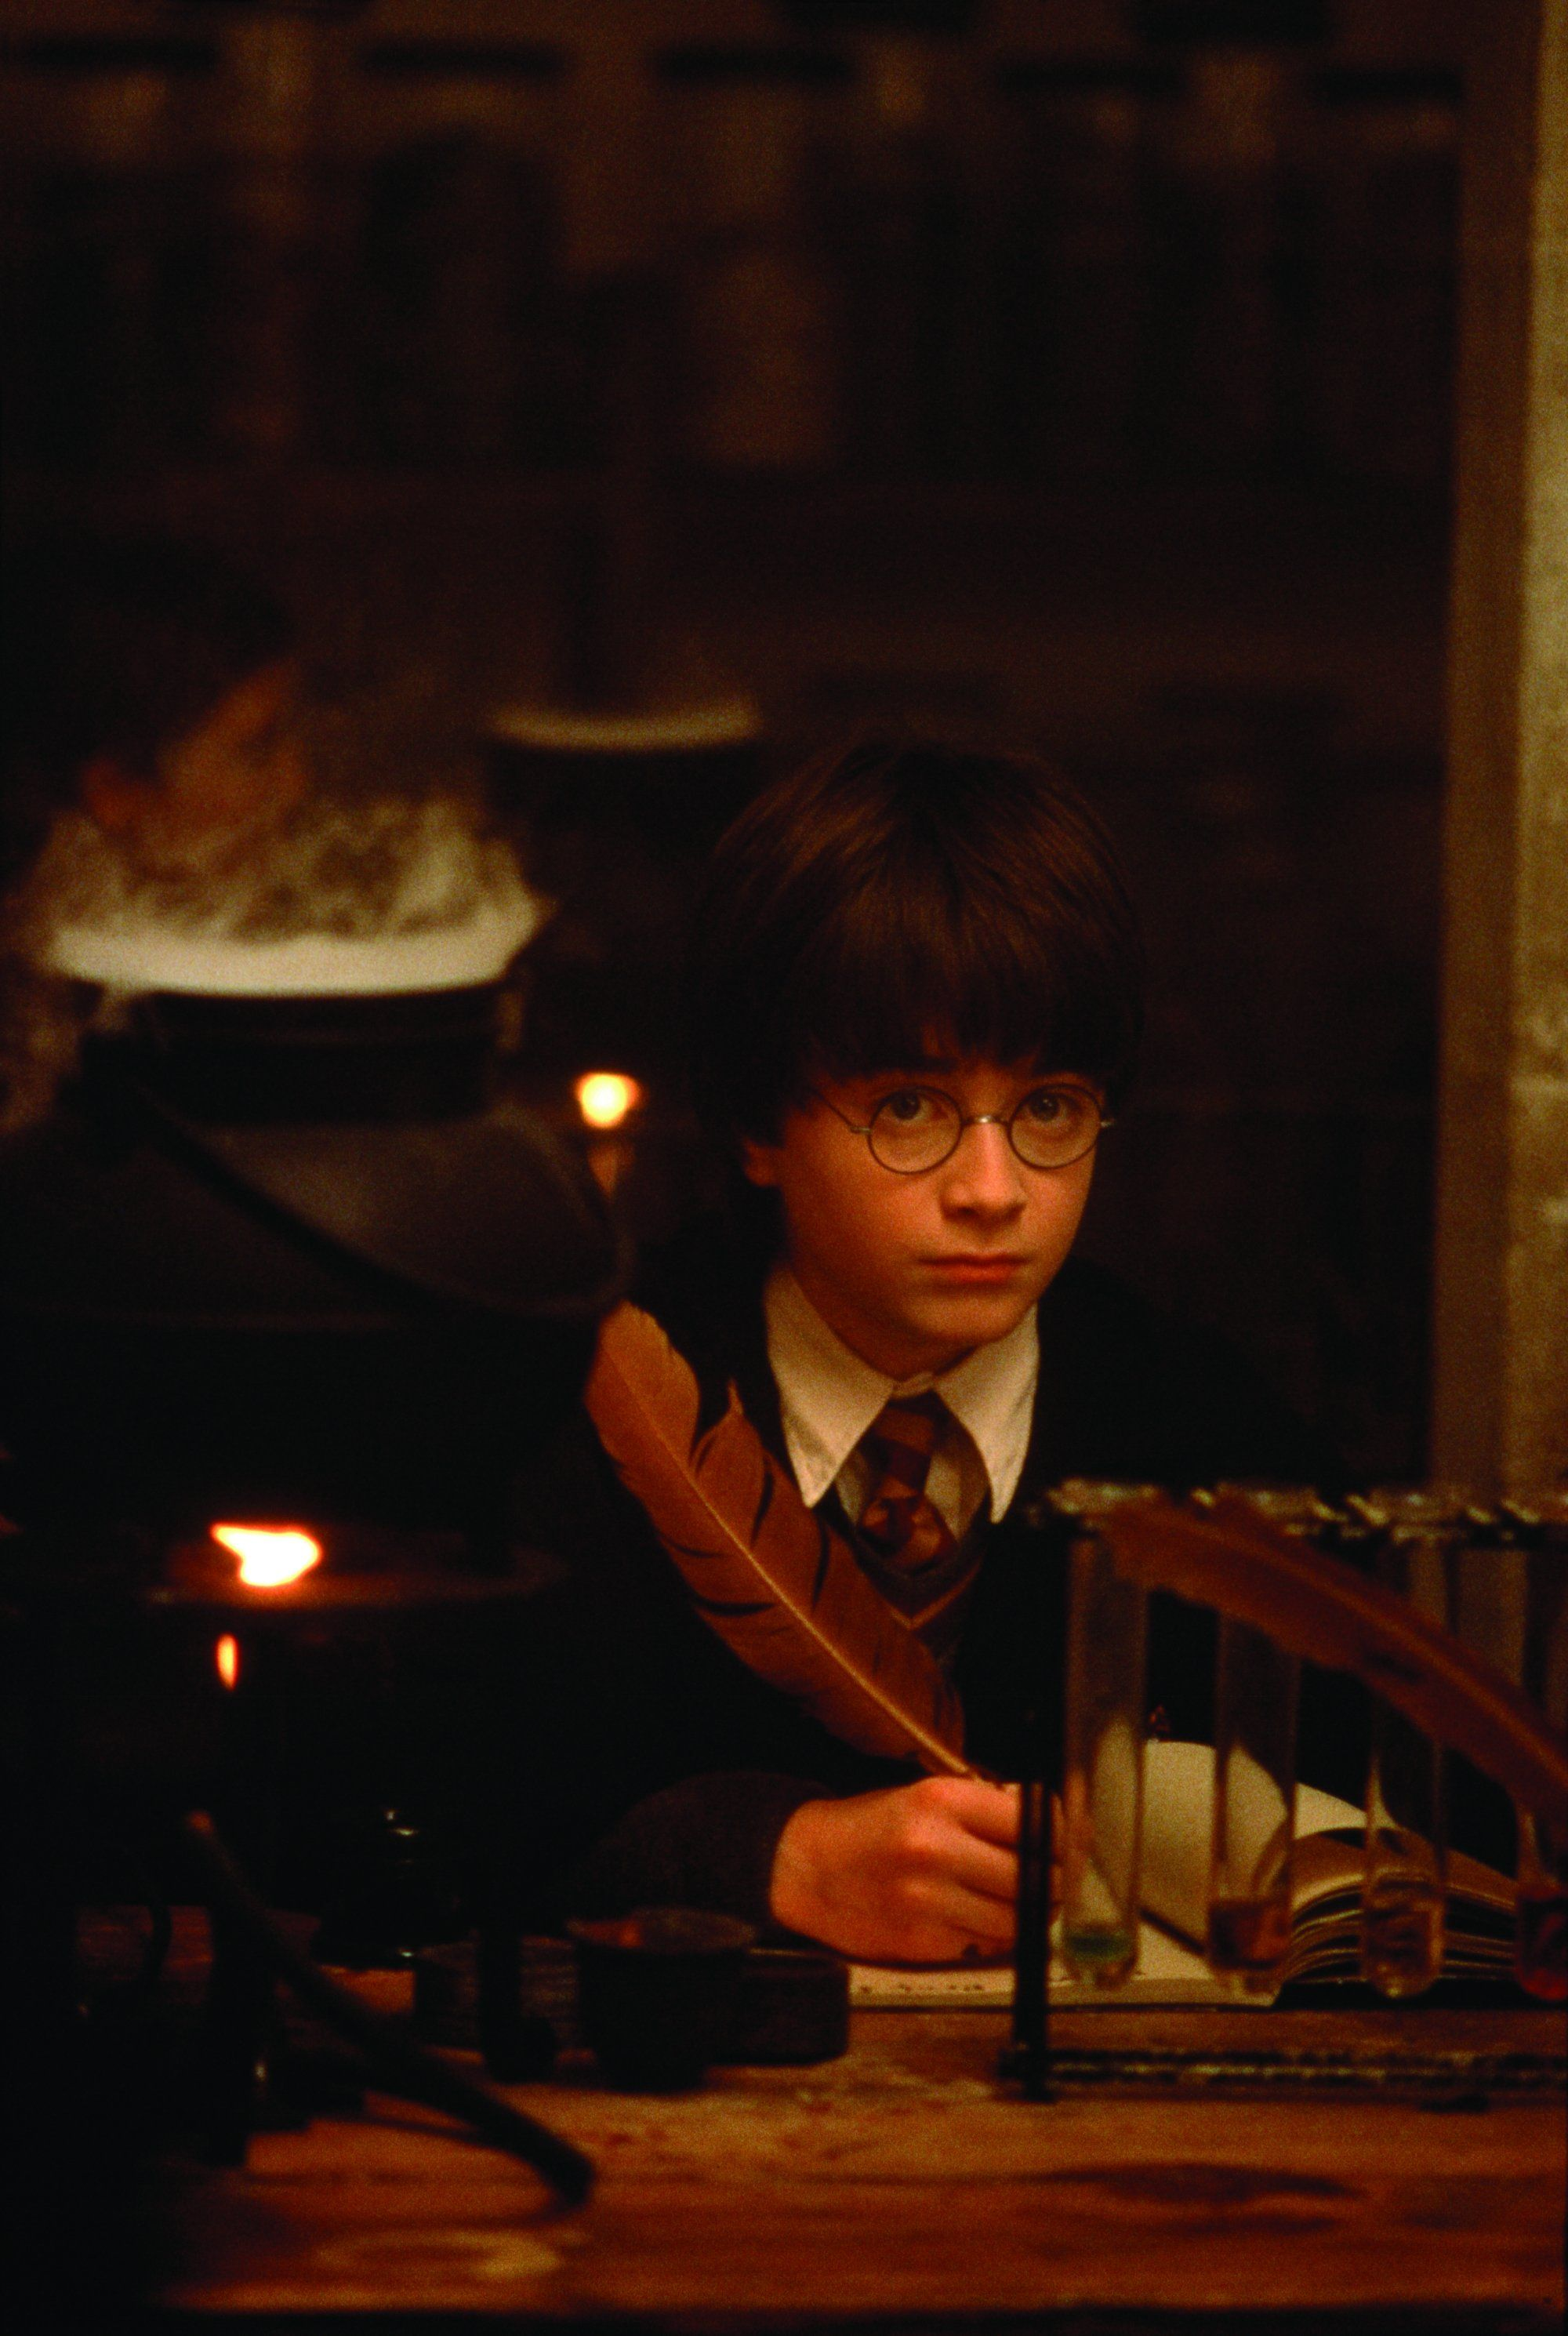 movies like harry potter and the sorcerer's stone